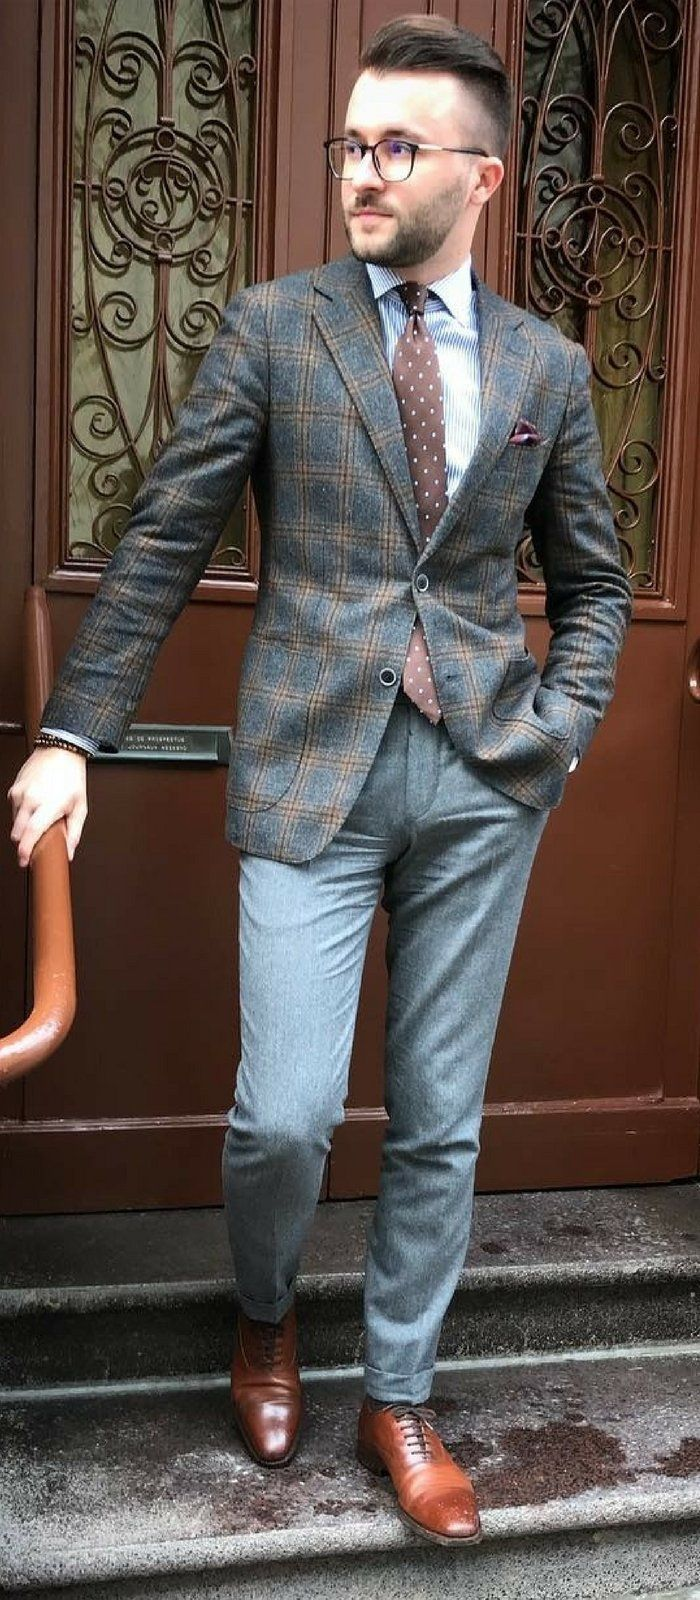 10 Edgy Ways To Wear Formal Outfits For Men – LIFESTYLE BY PS 10 Edgy Ways To Wear Formals – LIFESTYLE BY PS #MensFashionFormal